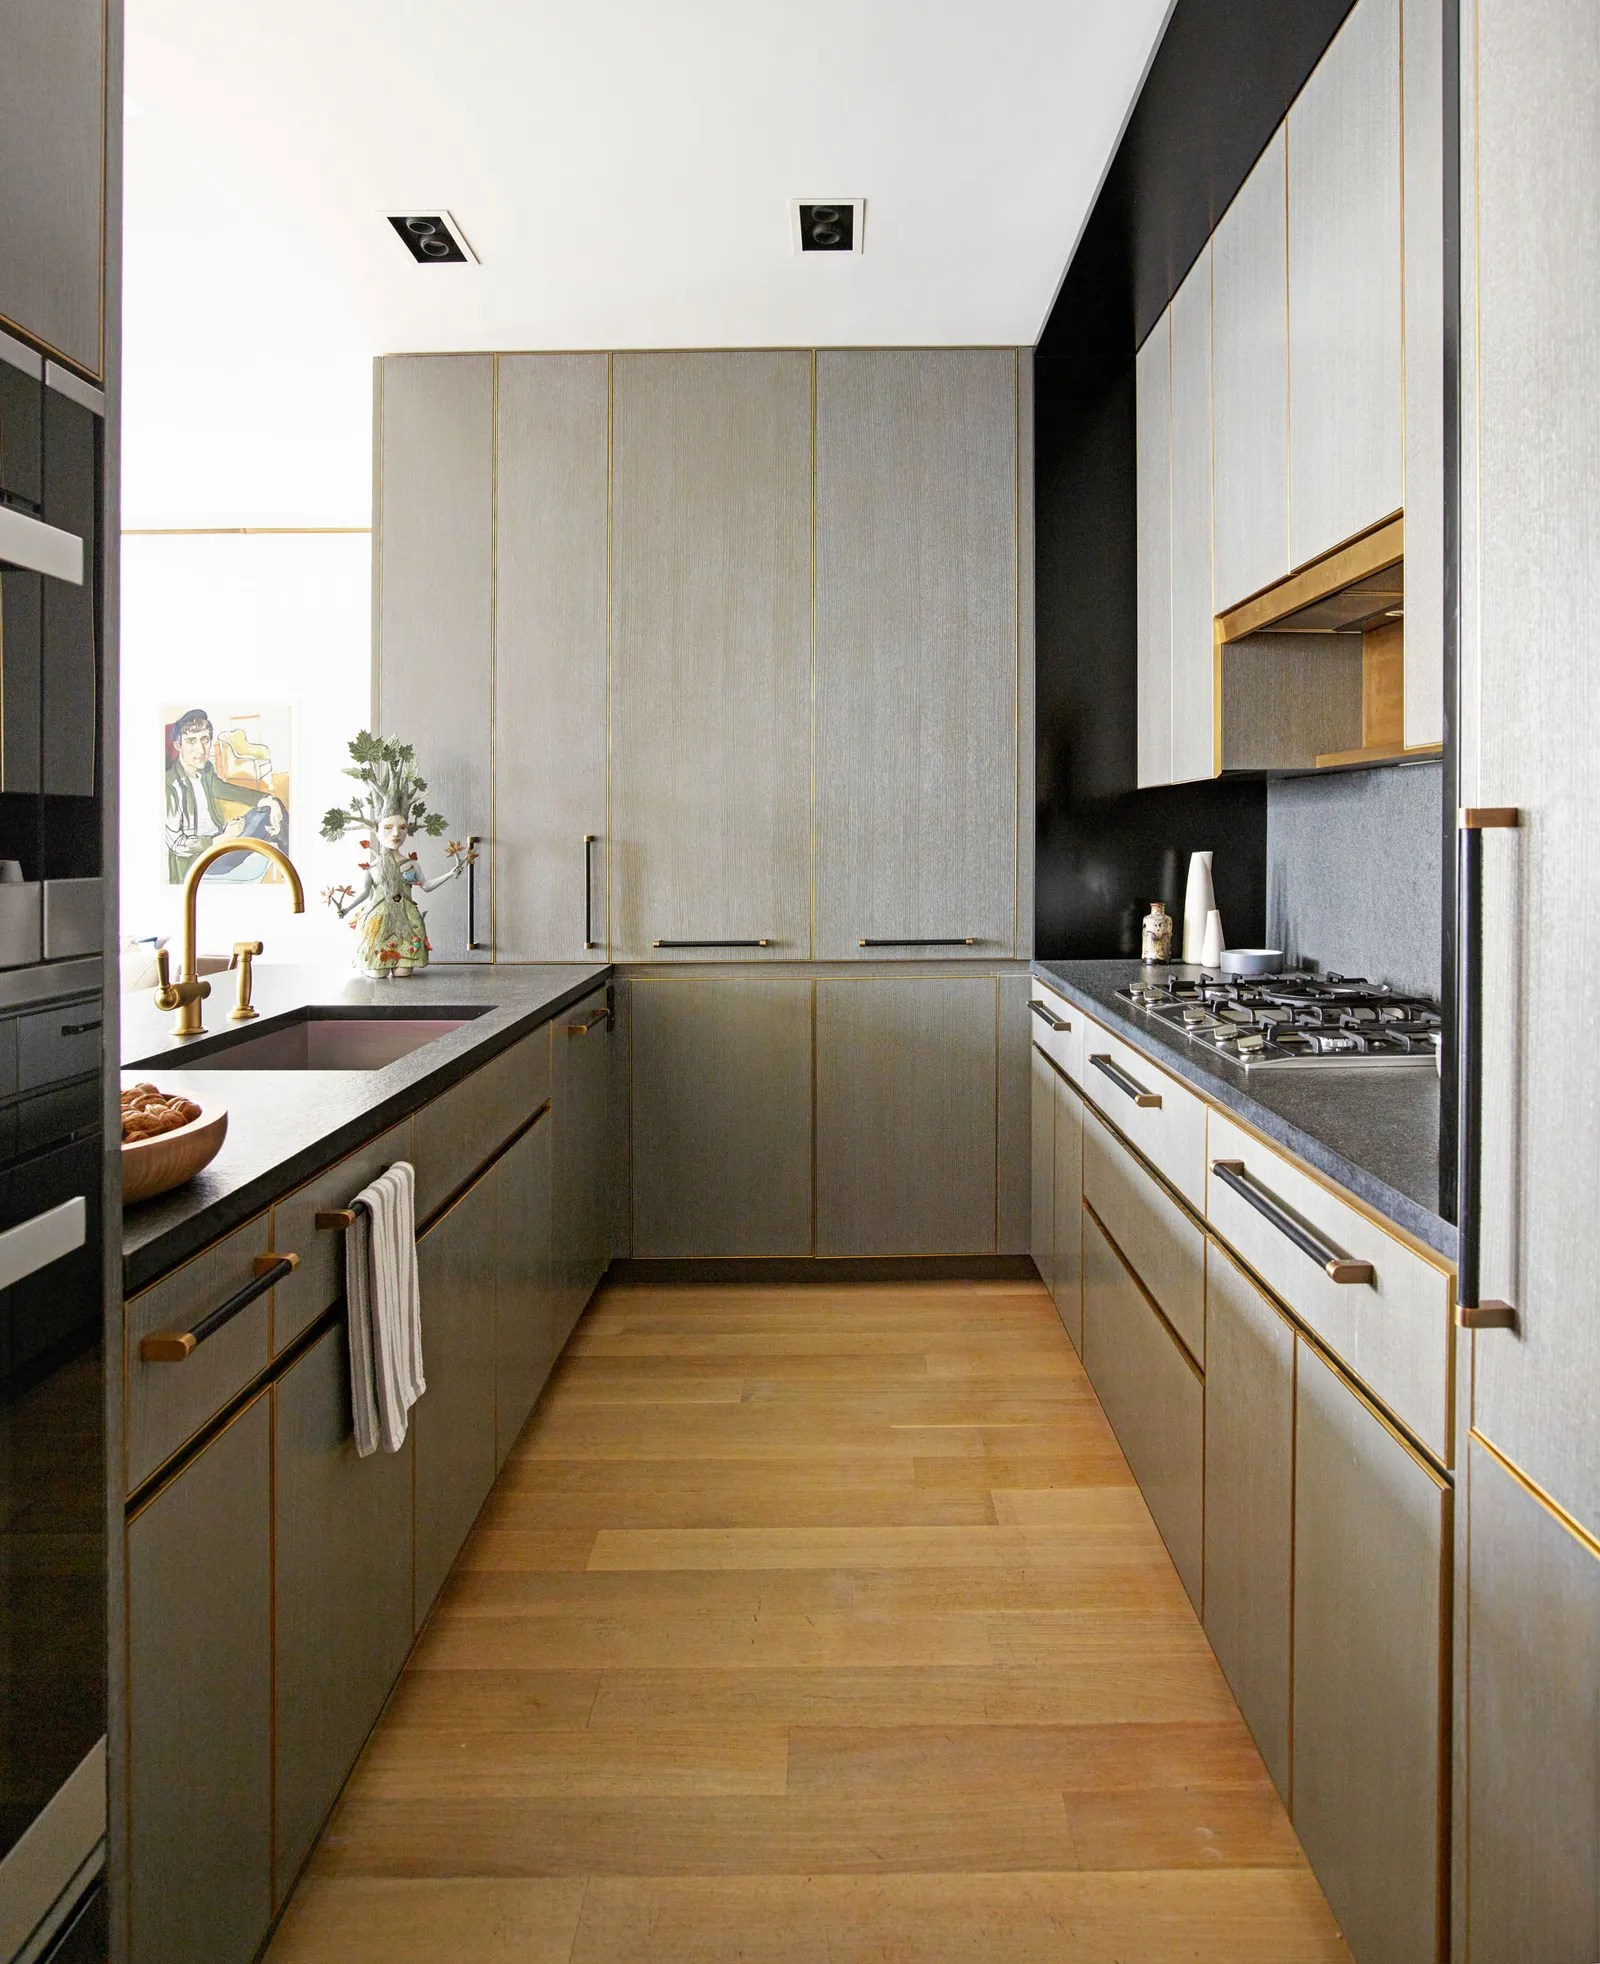 51 Small Kitchen Design Ideas That Make the Most of a Tiny ... on Small Kitchen Remodeling Ideas  id=98398